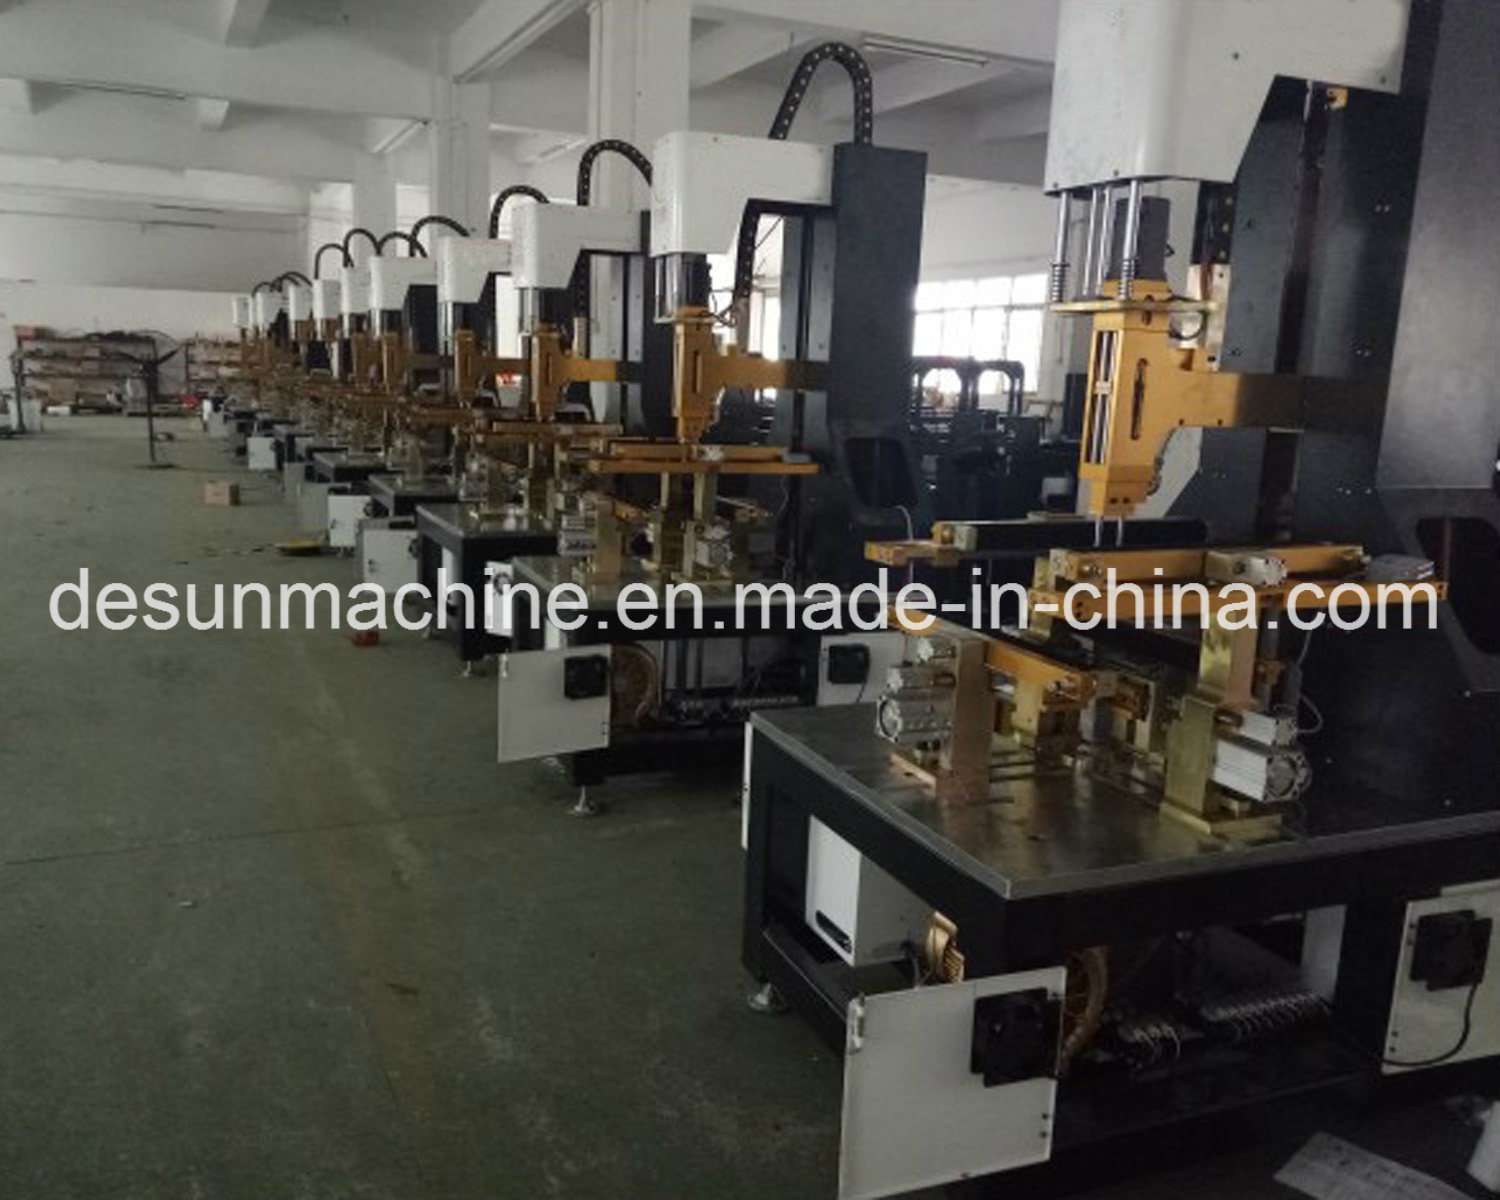 Yx-450 Semi-Automatic Rigid Box Forming/Molding/Wrapping Machine